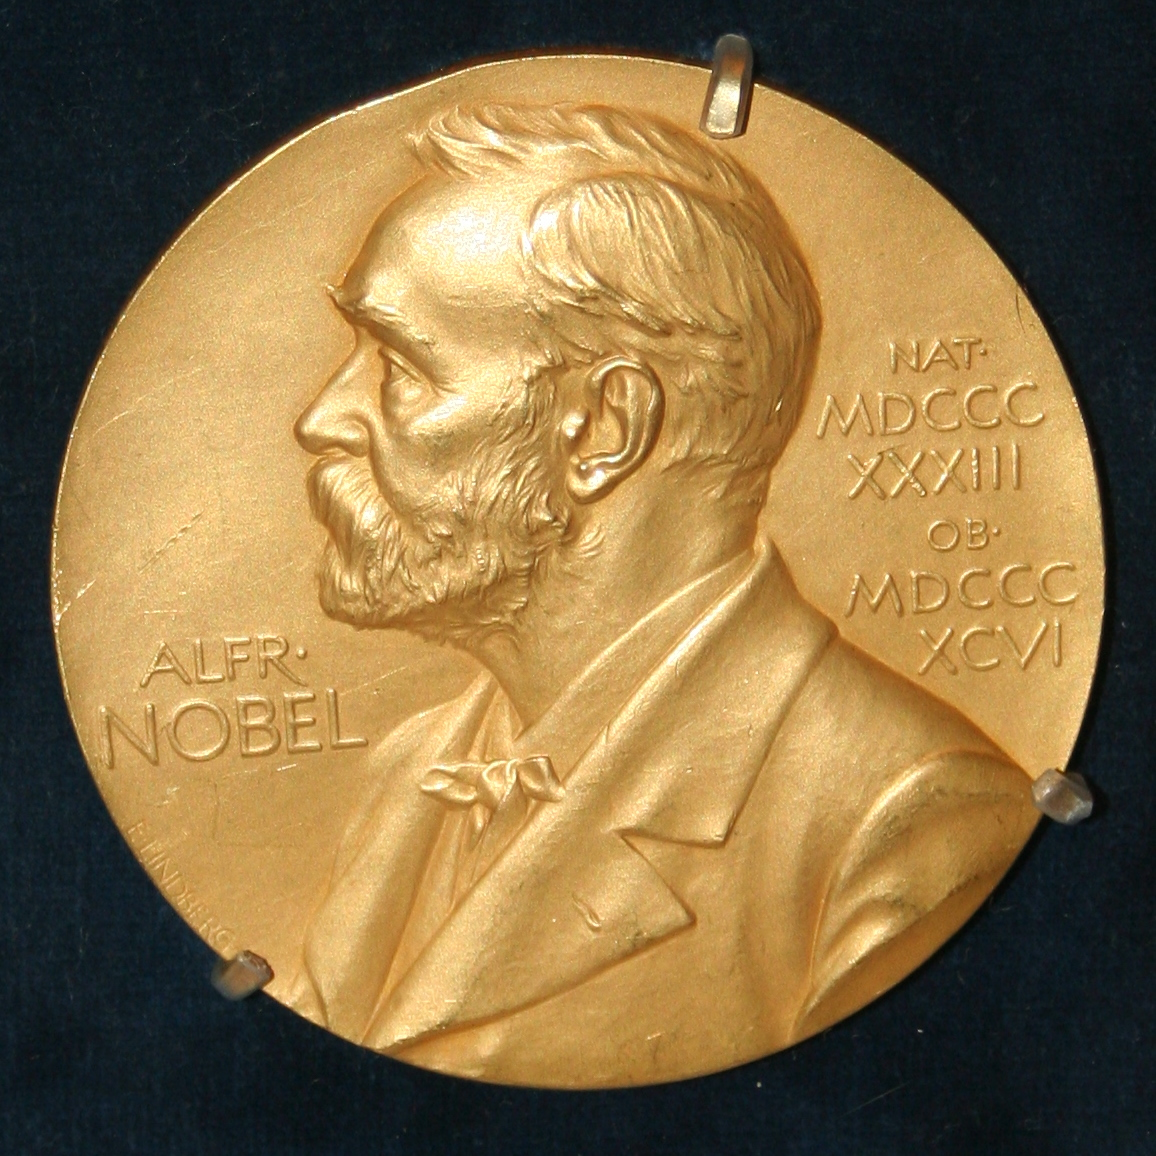 AWARDS AND HONOURS THE NOBEL PRIZE 2018